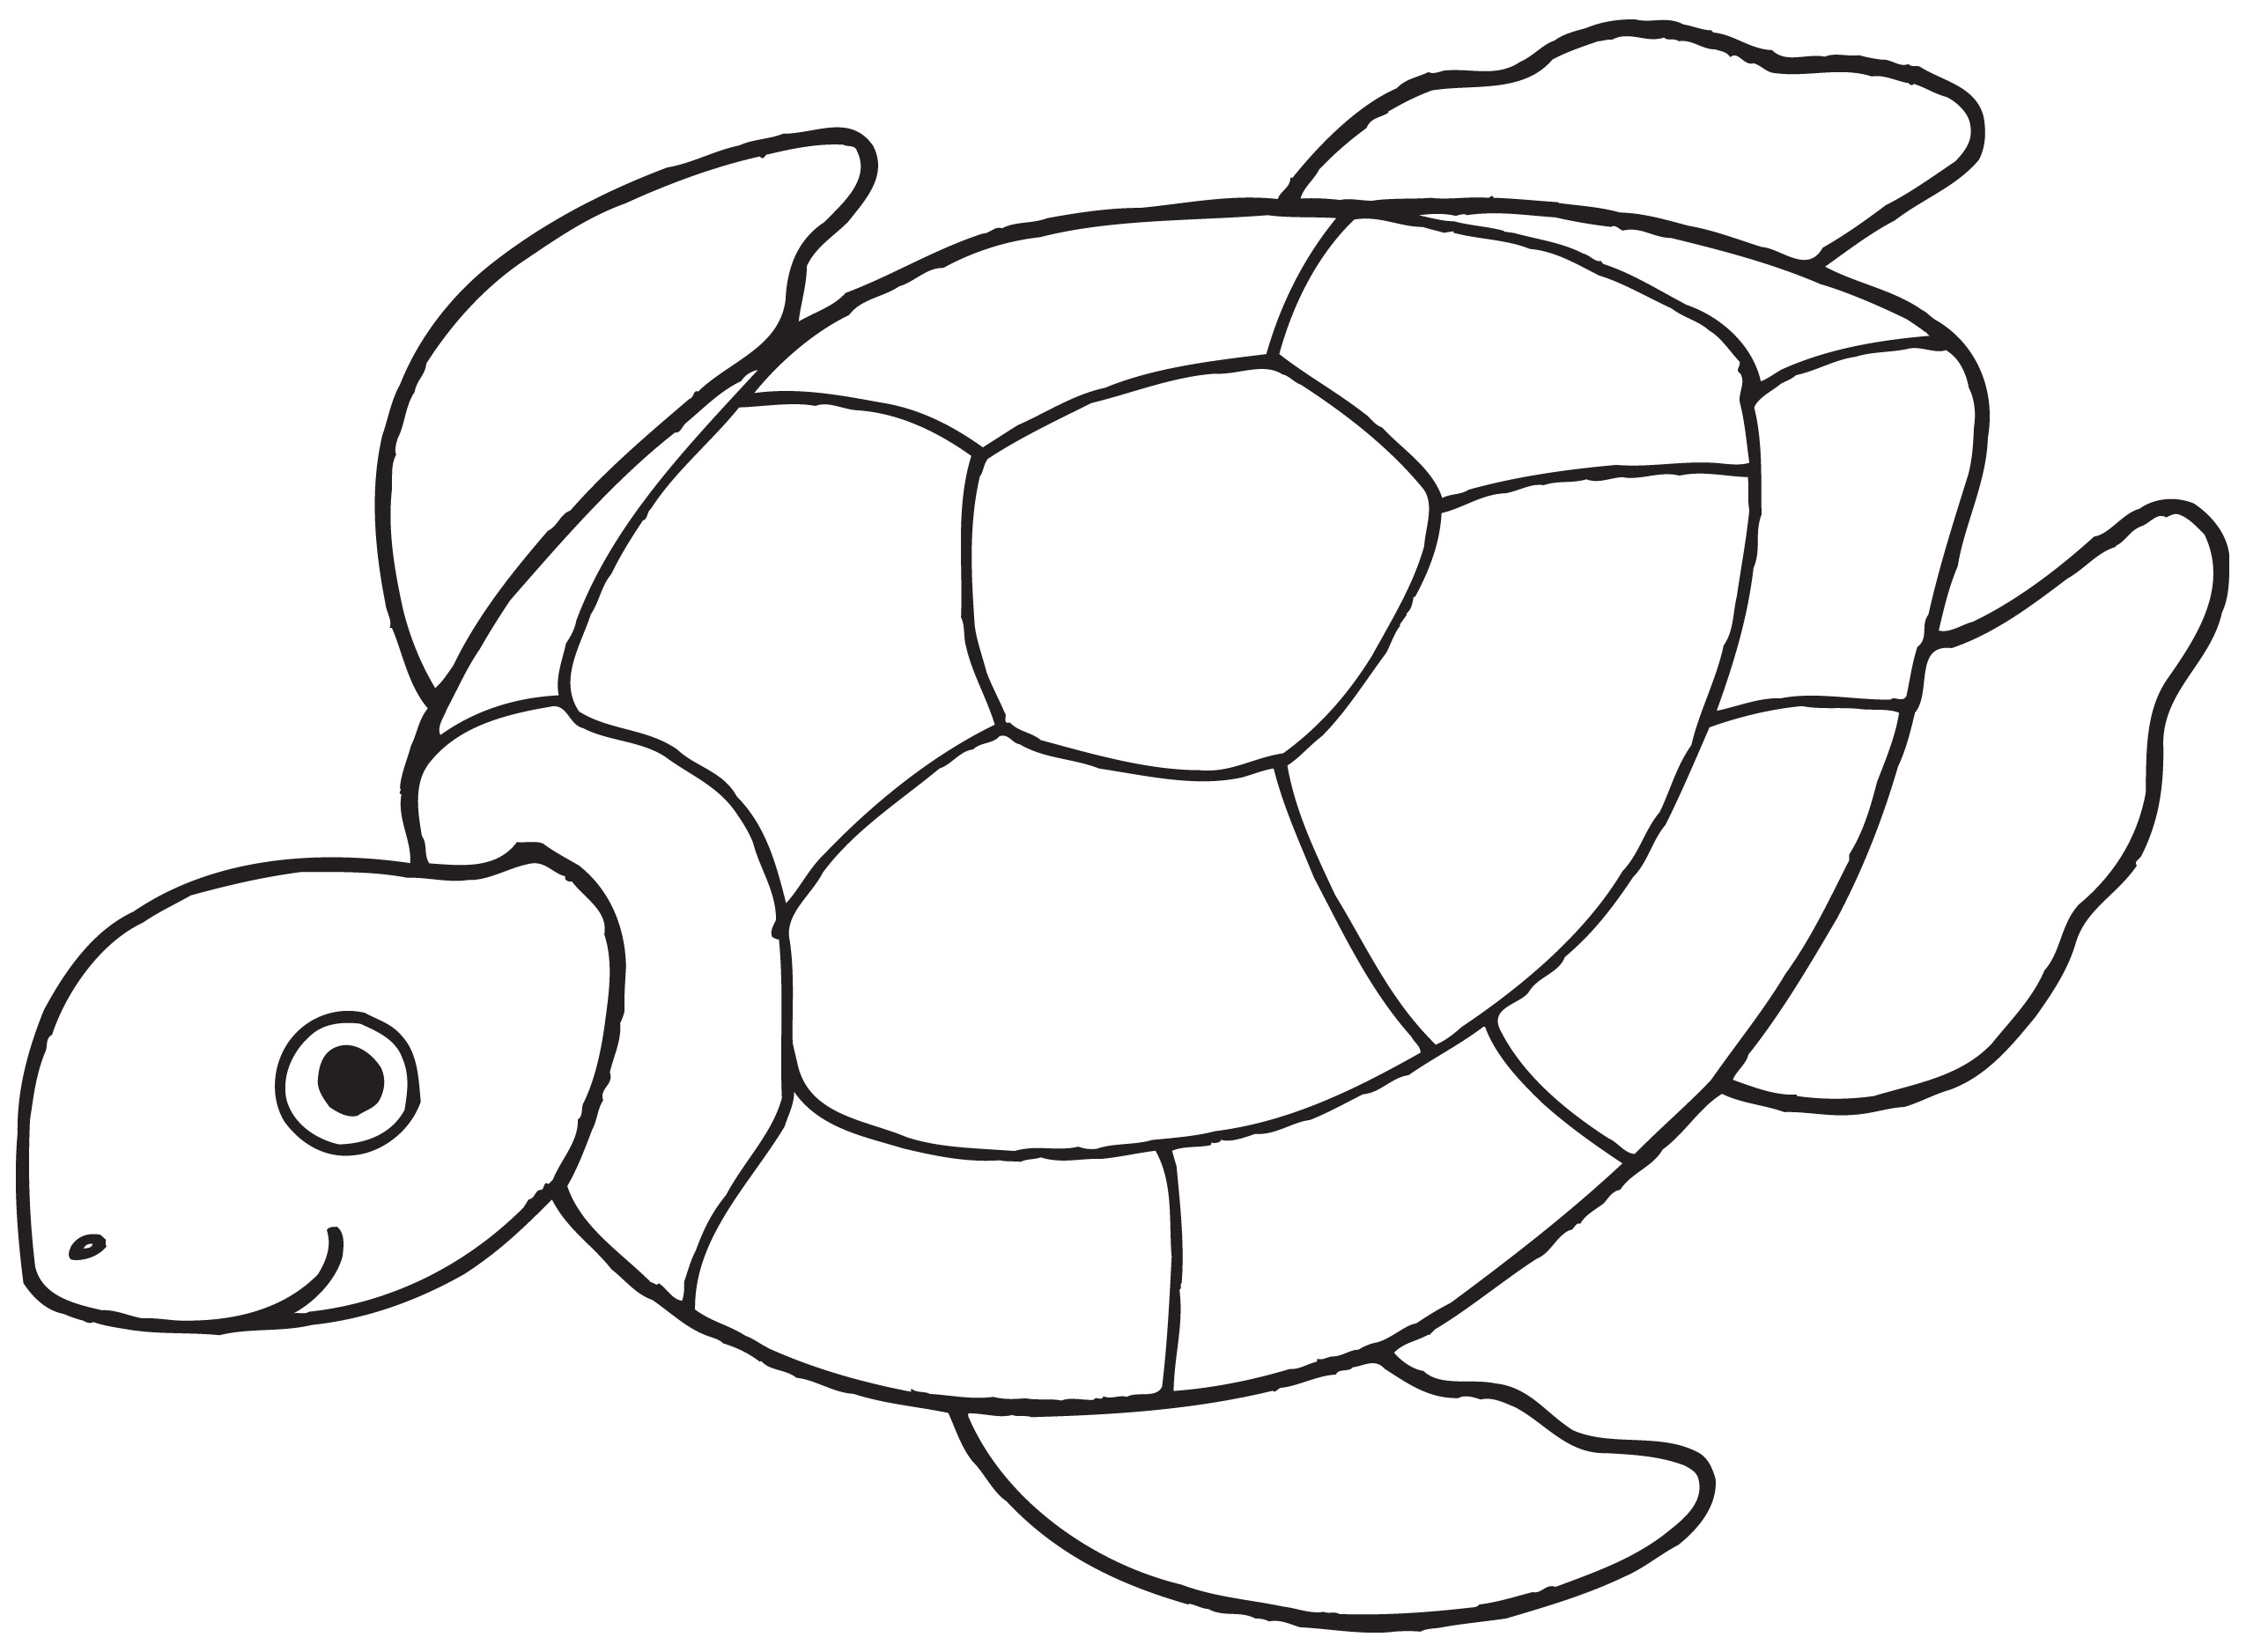 Black And White Line Drawings Of Animals : Black and white drawing of a sea turtle to print free